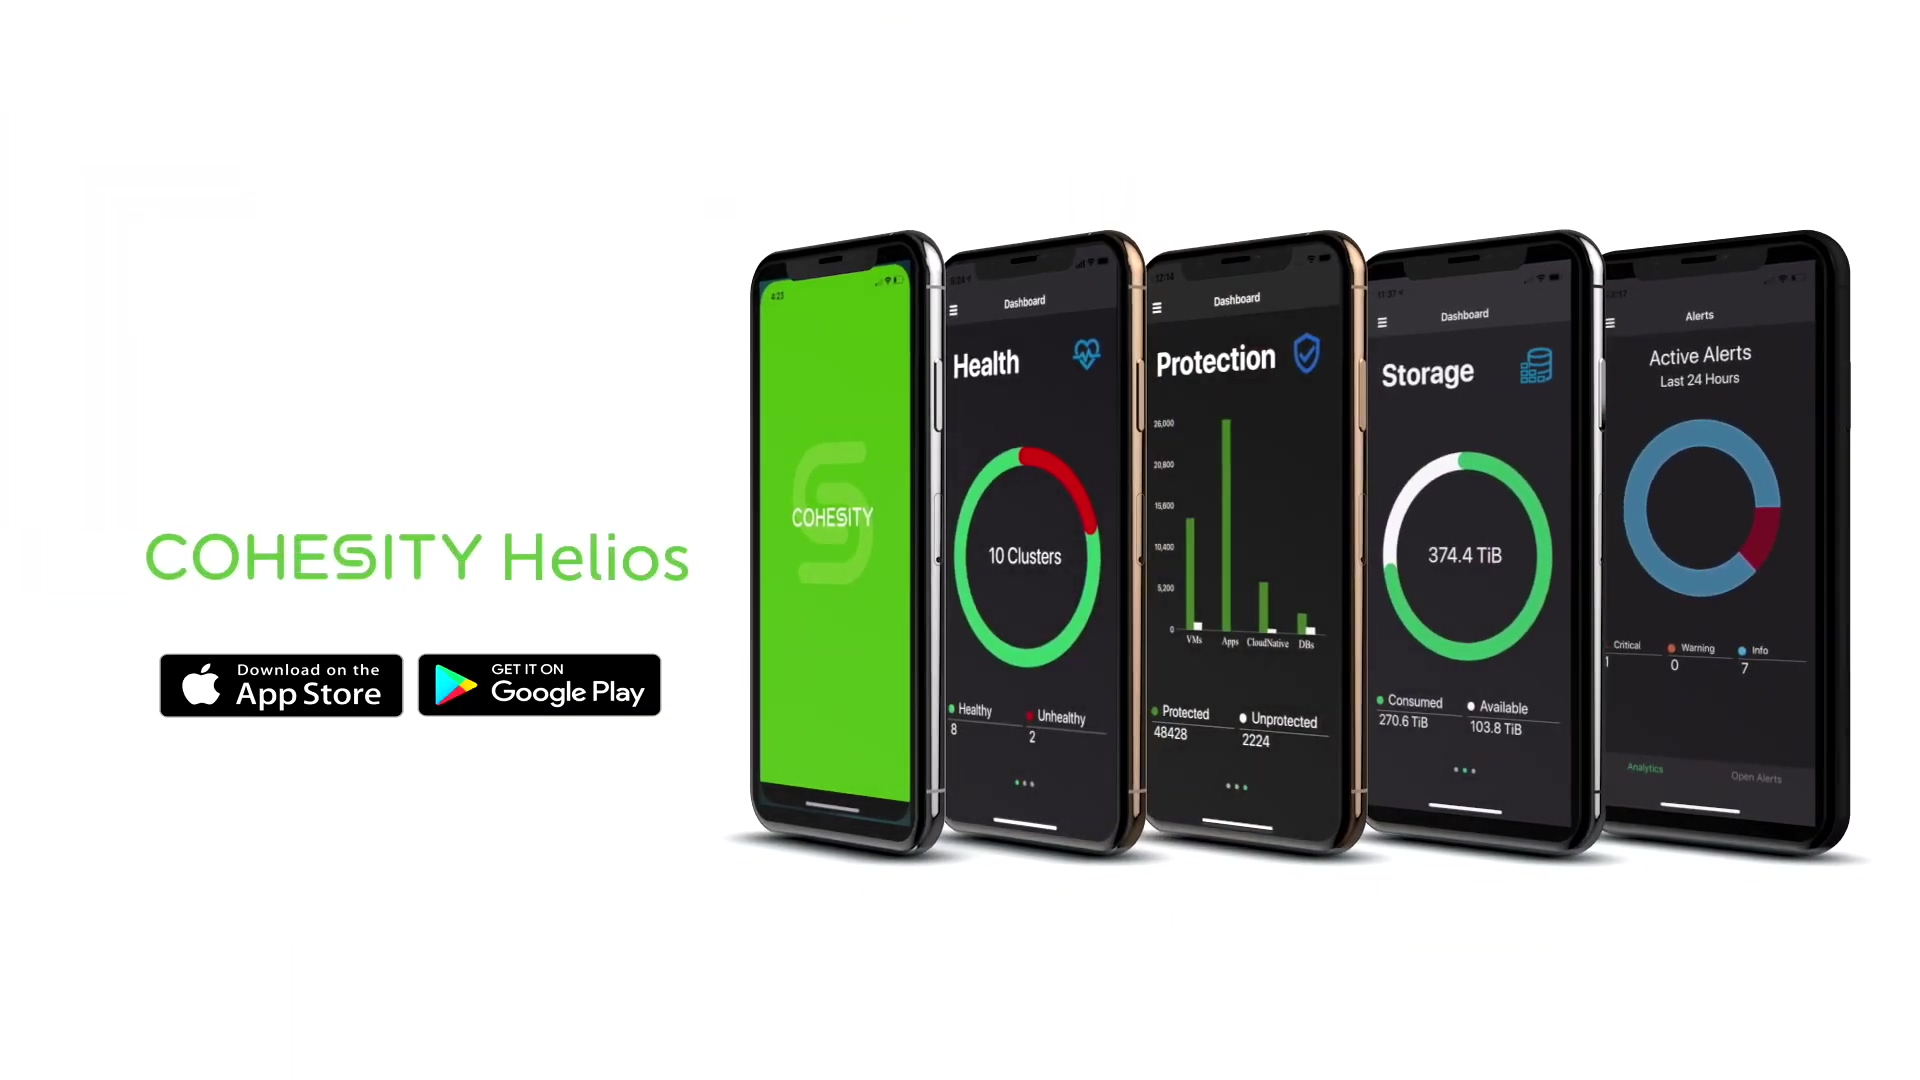 y2mate.com - Cohesity Helios Mobile App_ A New Way to Manage Data on the Go_hpW6WntzhaE_1080p